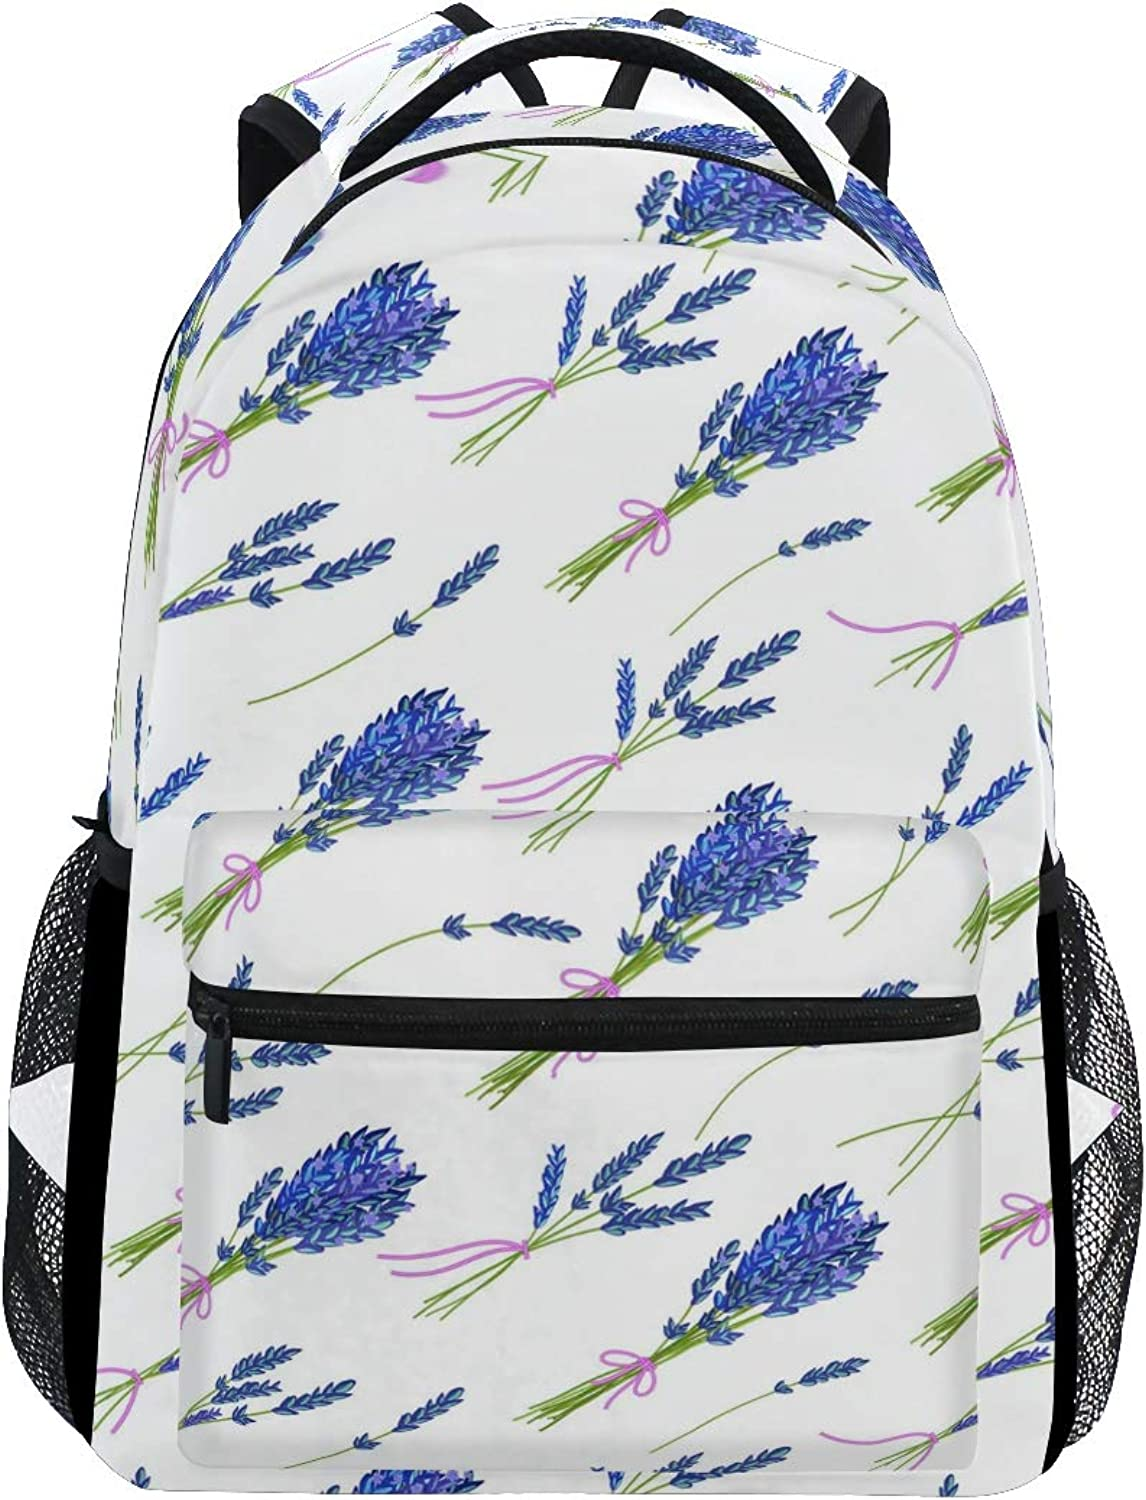 blueee Soft Lavender Nursery Large Backpack Travel Outdoor Sports Laptop Backpack for Women & Men College School Water Resistant